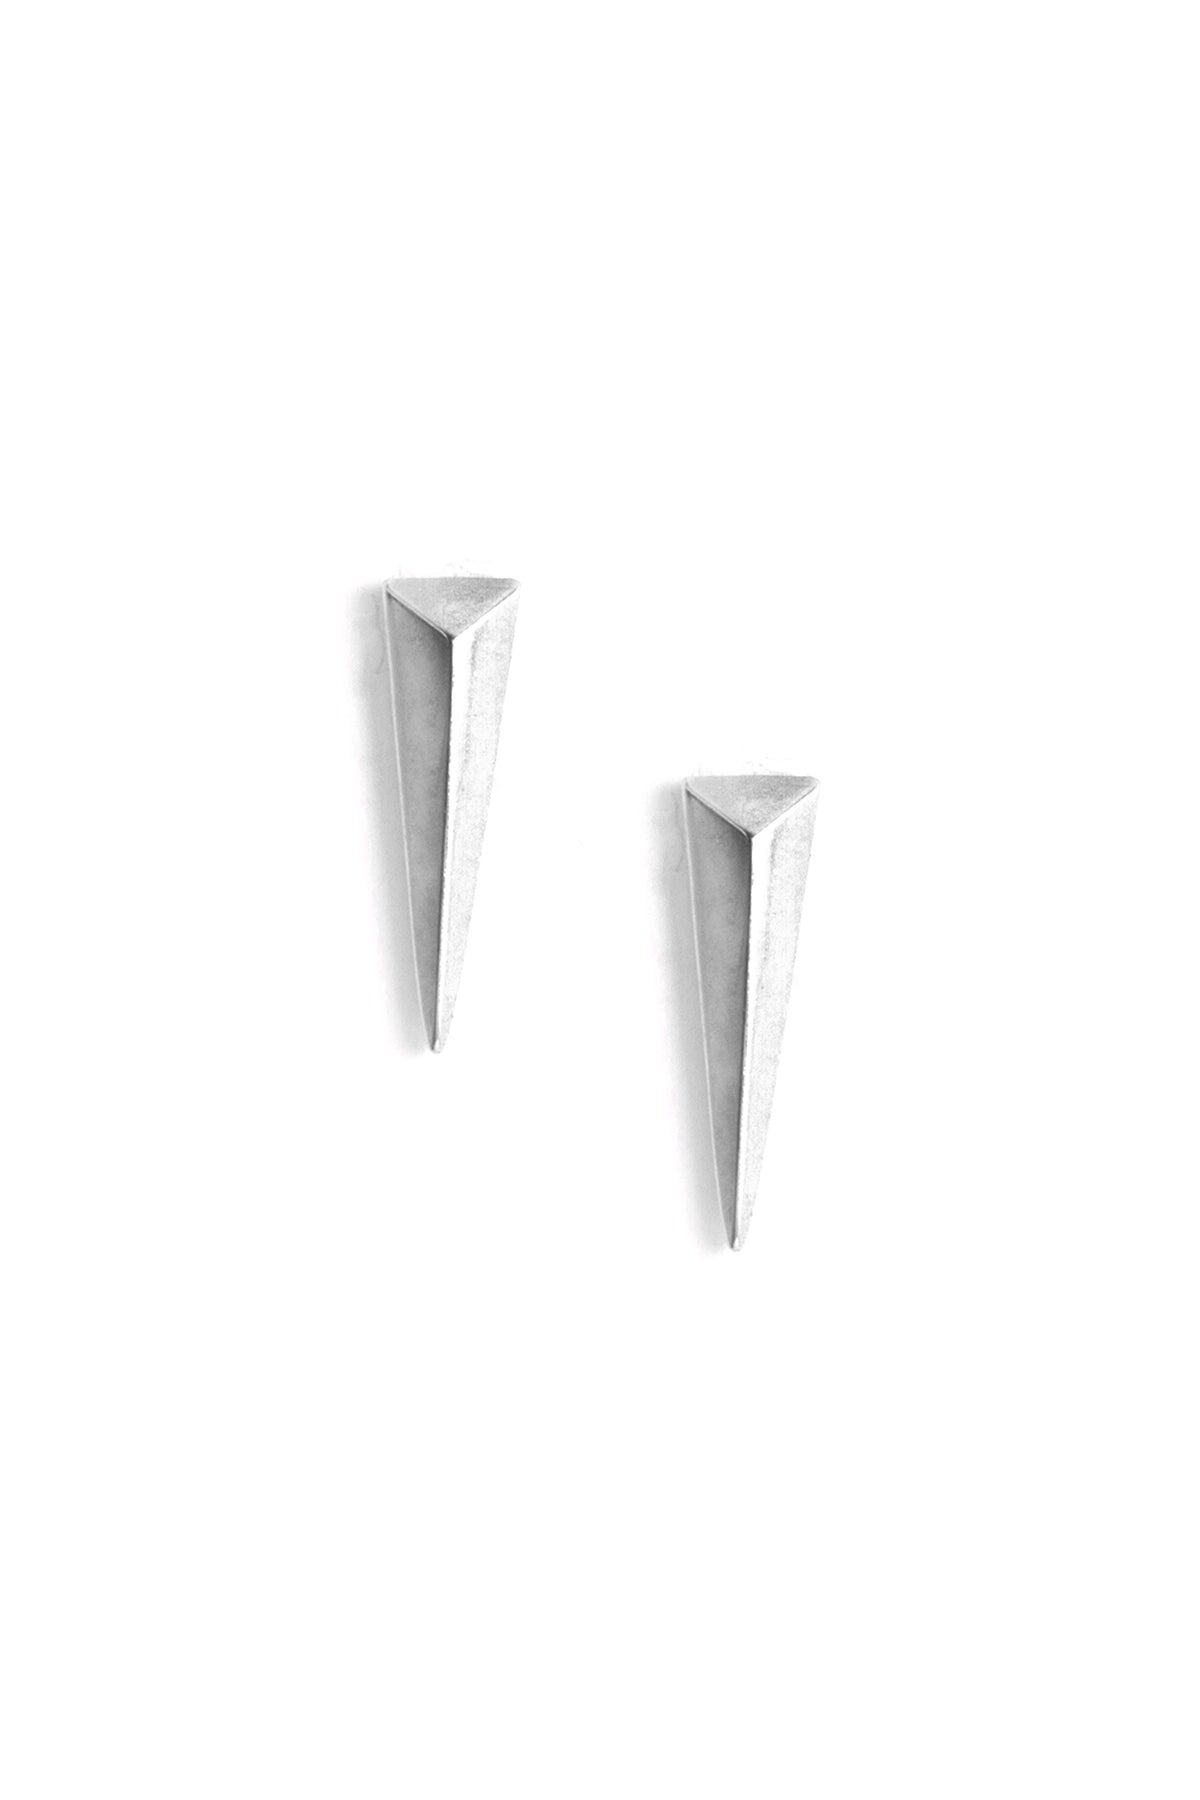 Image of SABER STUDS - MEDIUM - SILVER